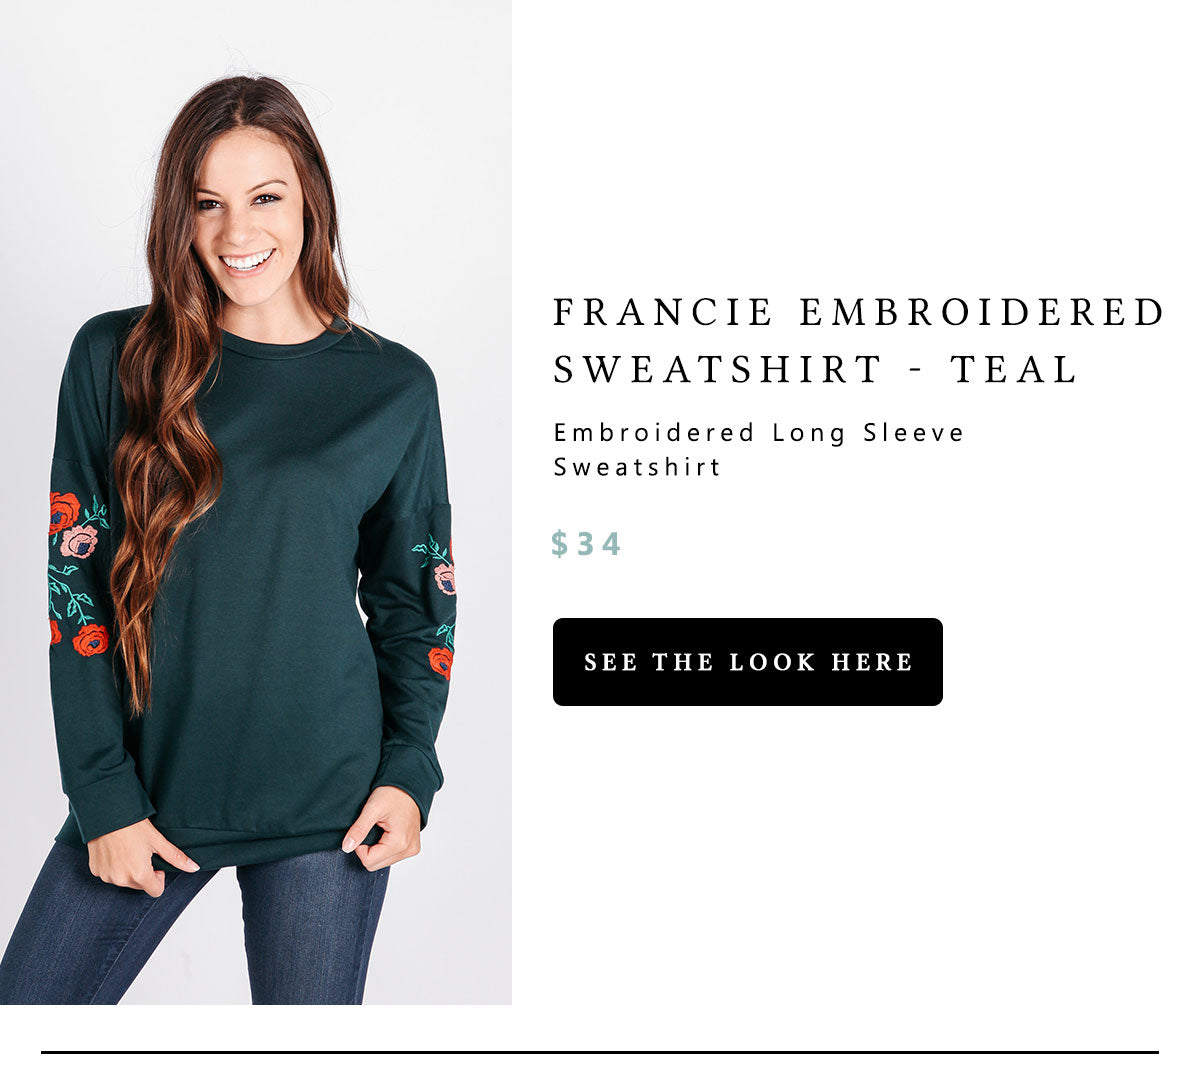 Francie Embroidered Sweatshirt - teal